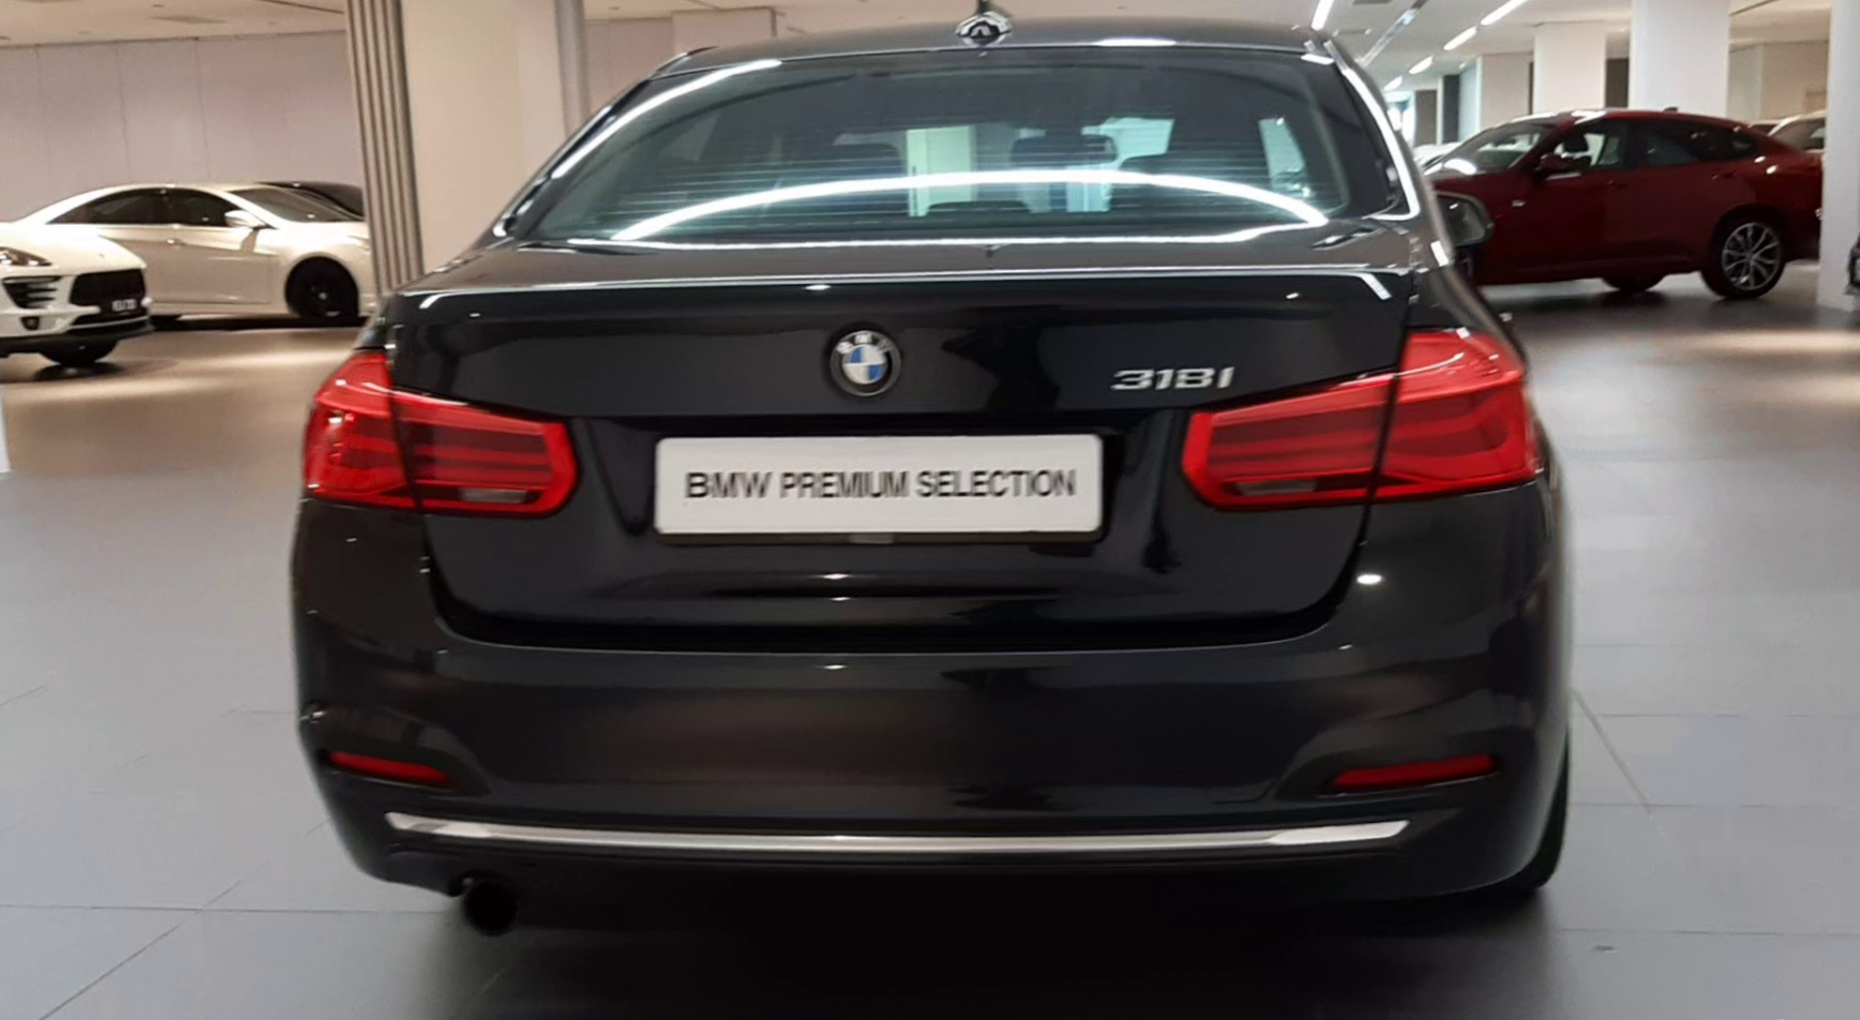 2017 BMW 318i Luxury F30 LCI - CKD